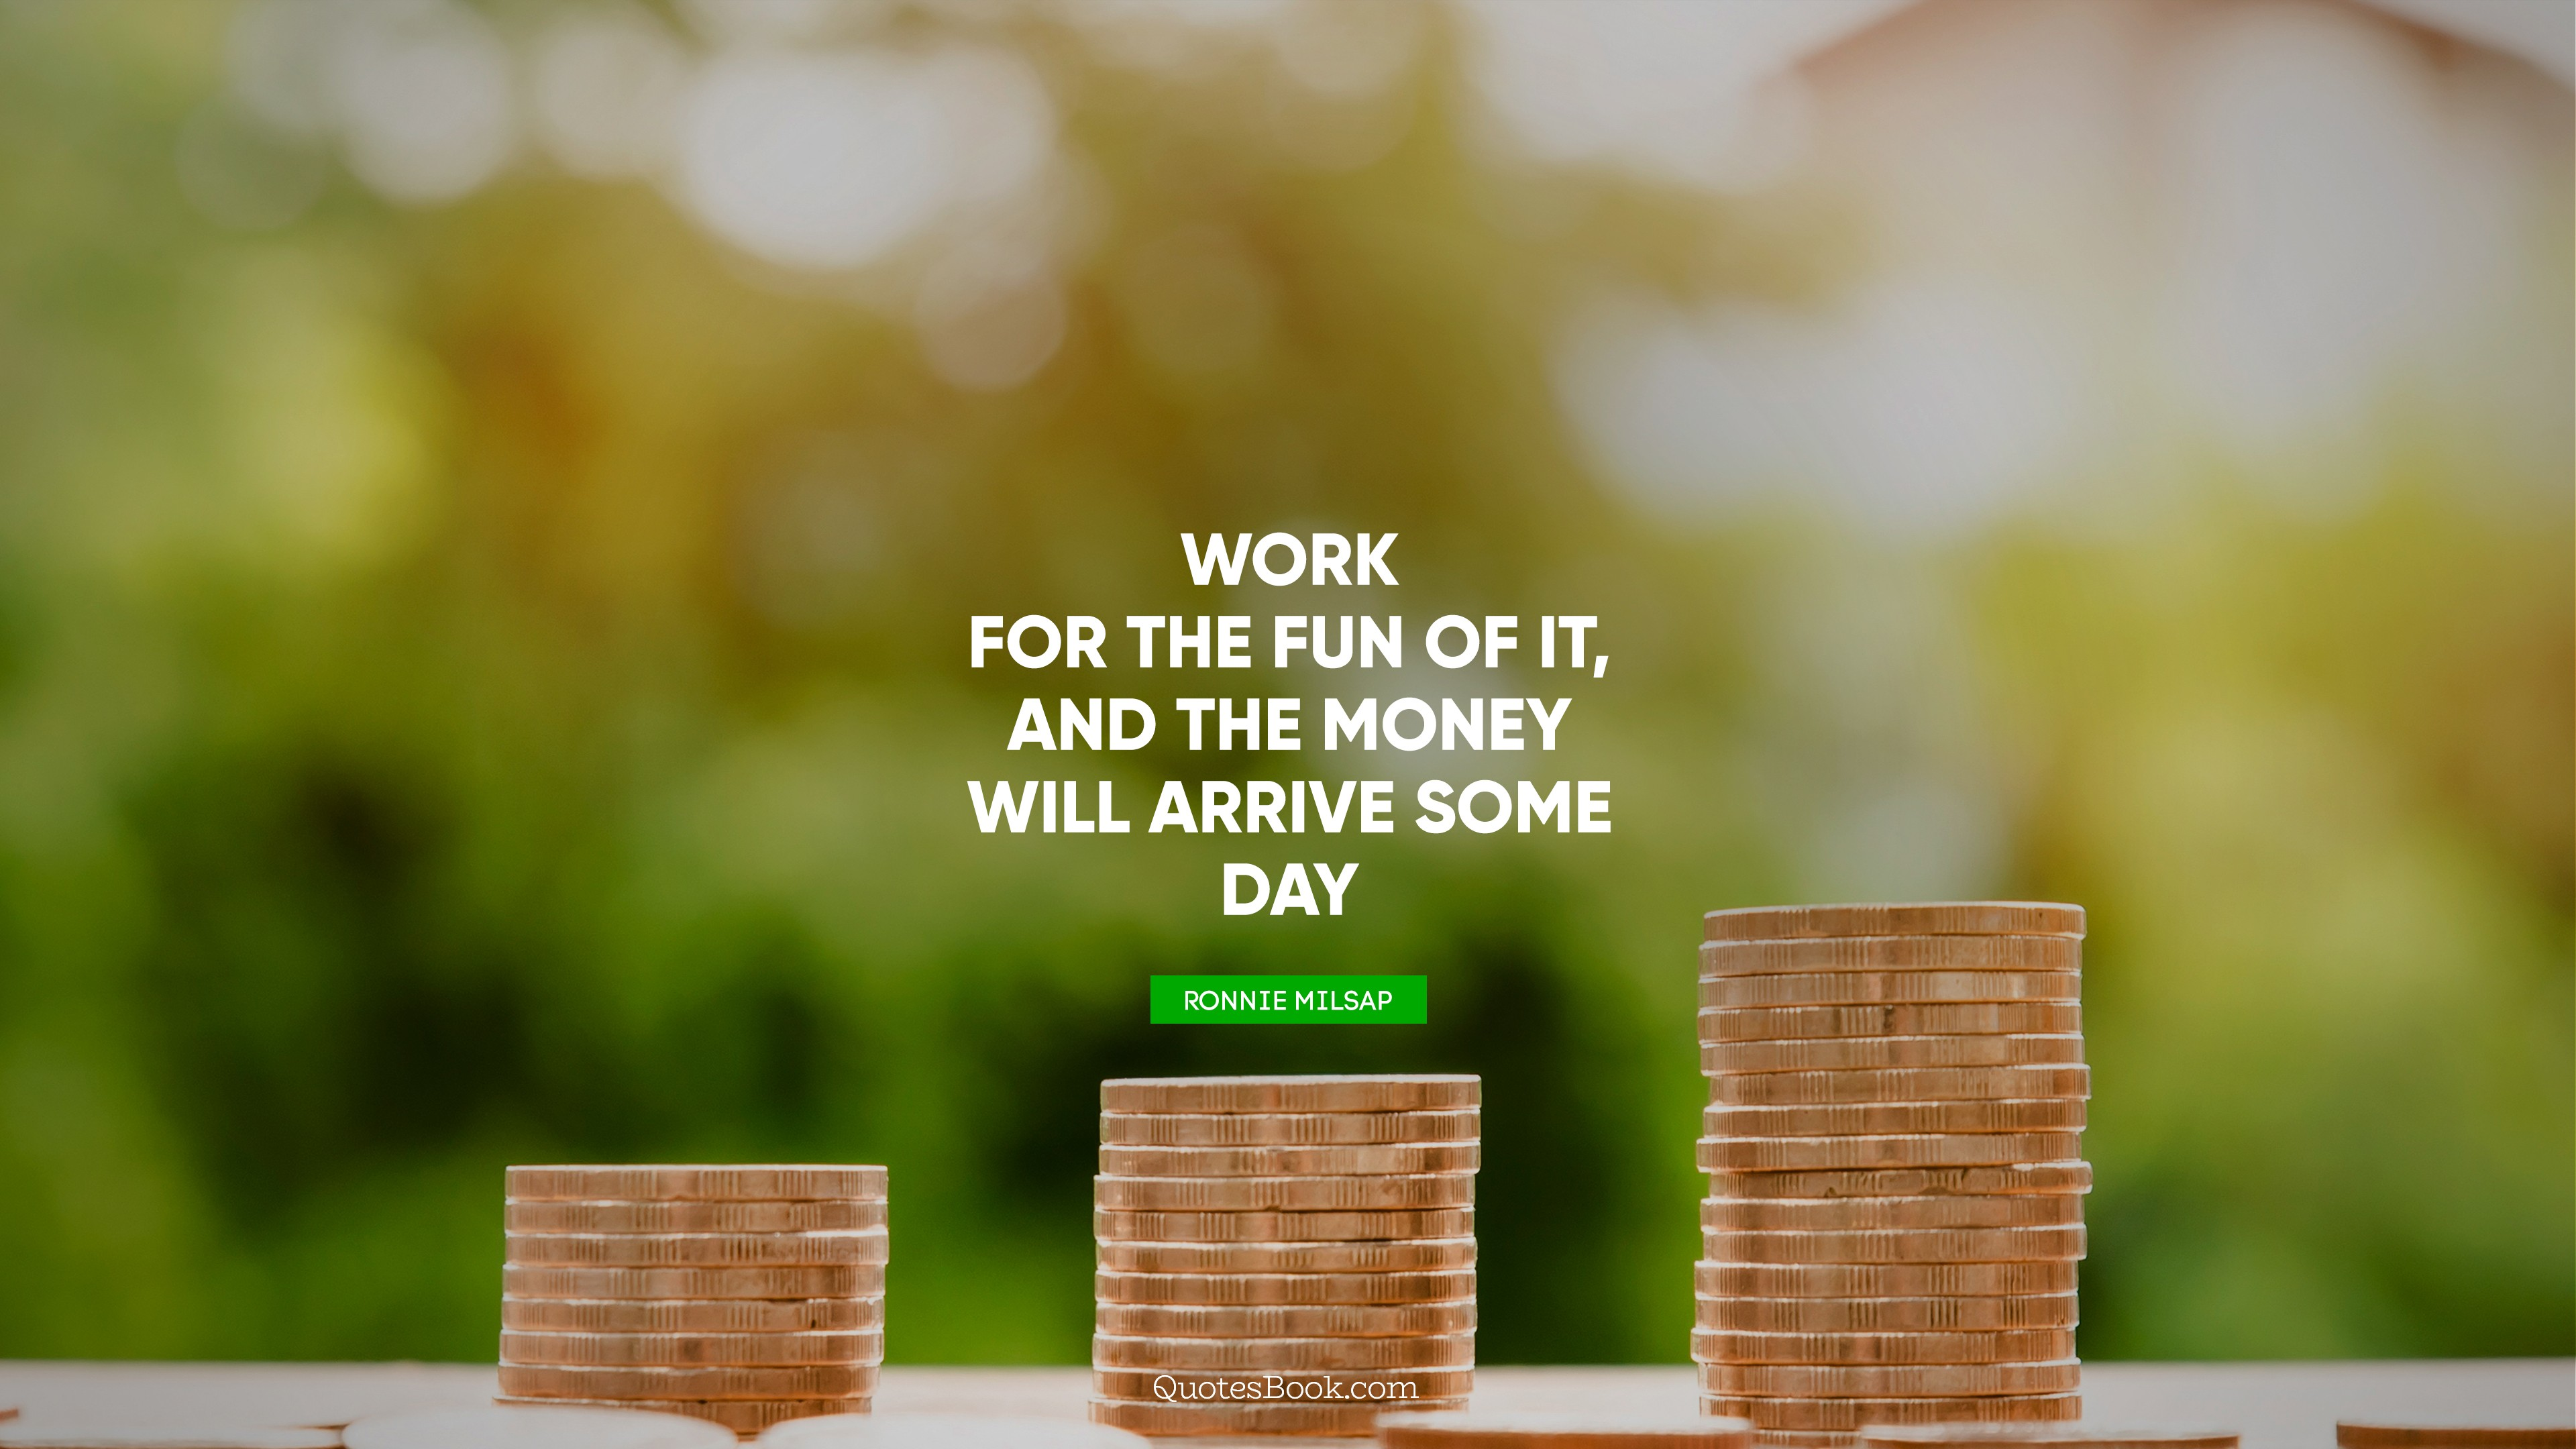 Work For The Fun Of It And The Money Will Arrive Some Day Quote